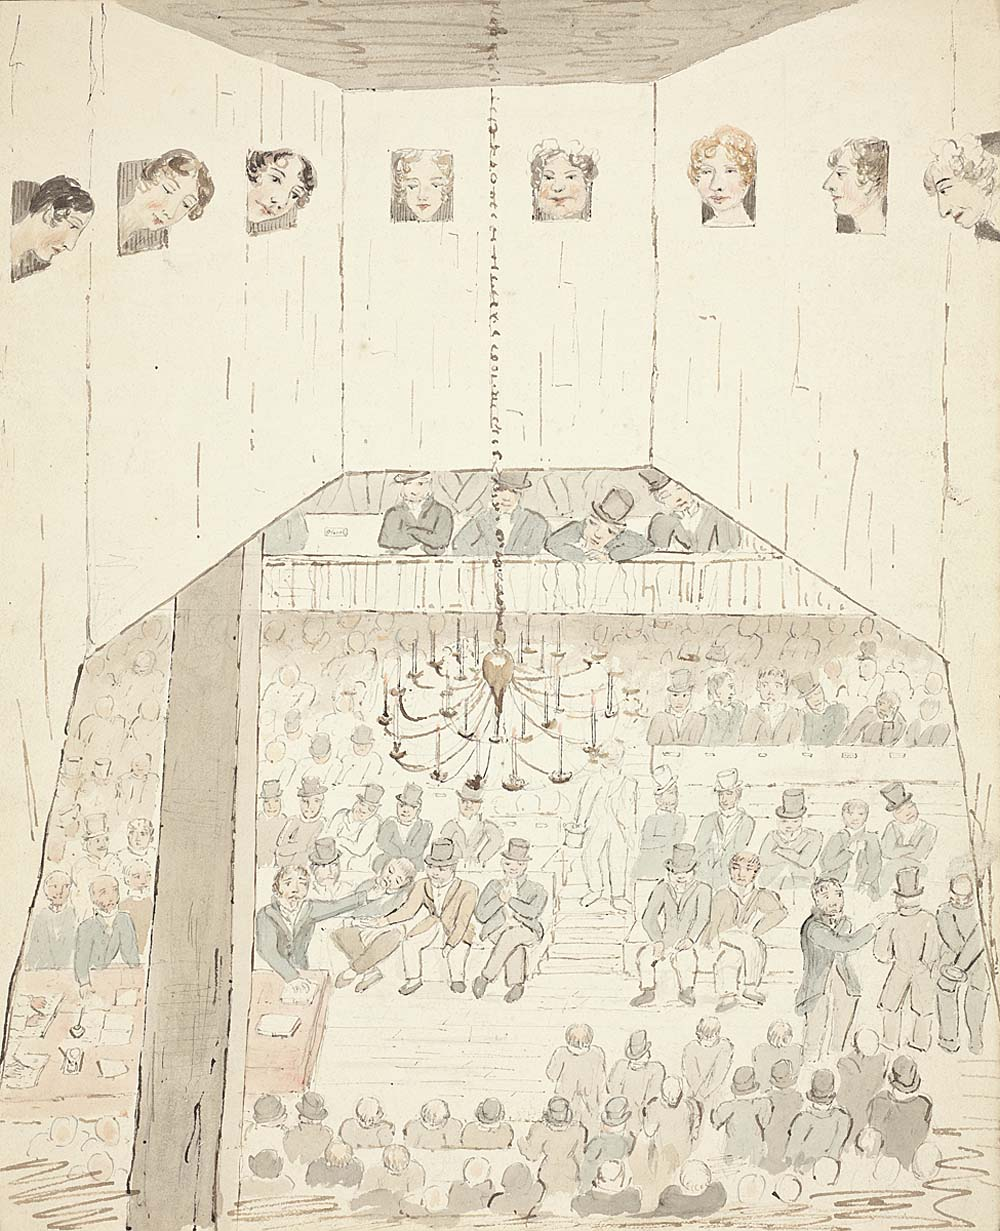 a sketch showing women peering through small windows on parliament below